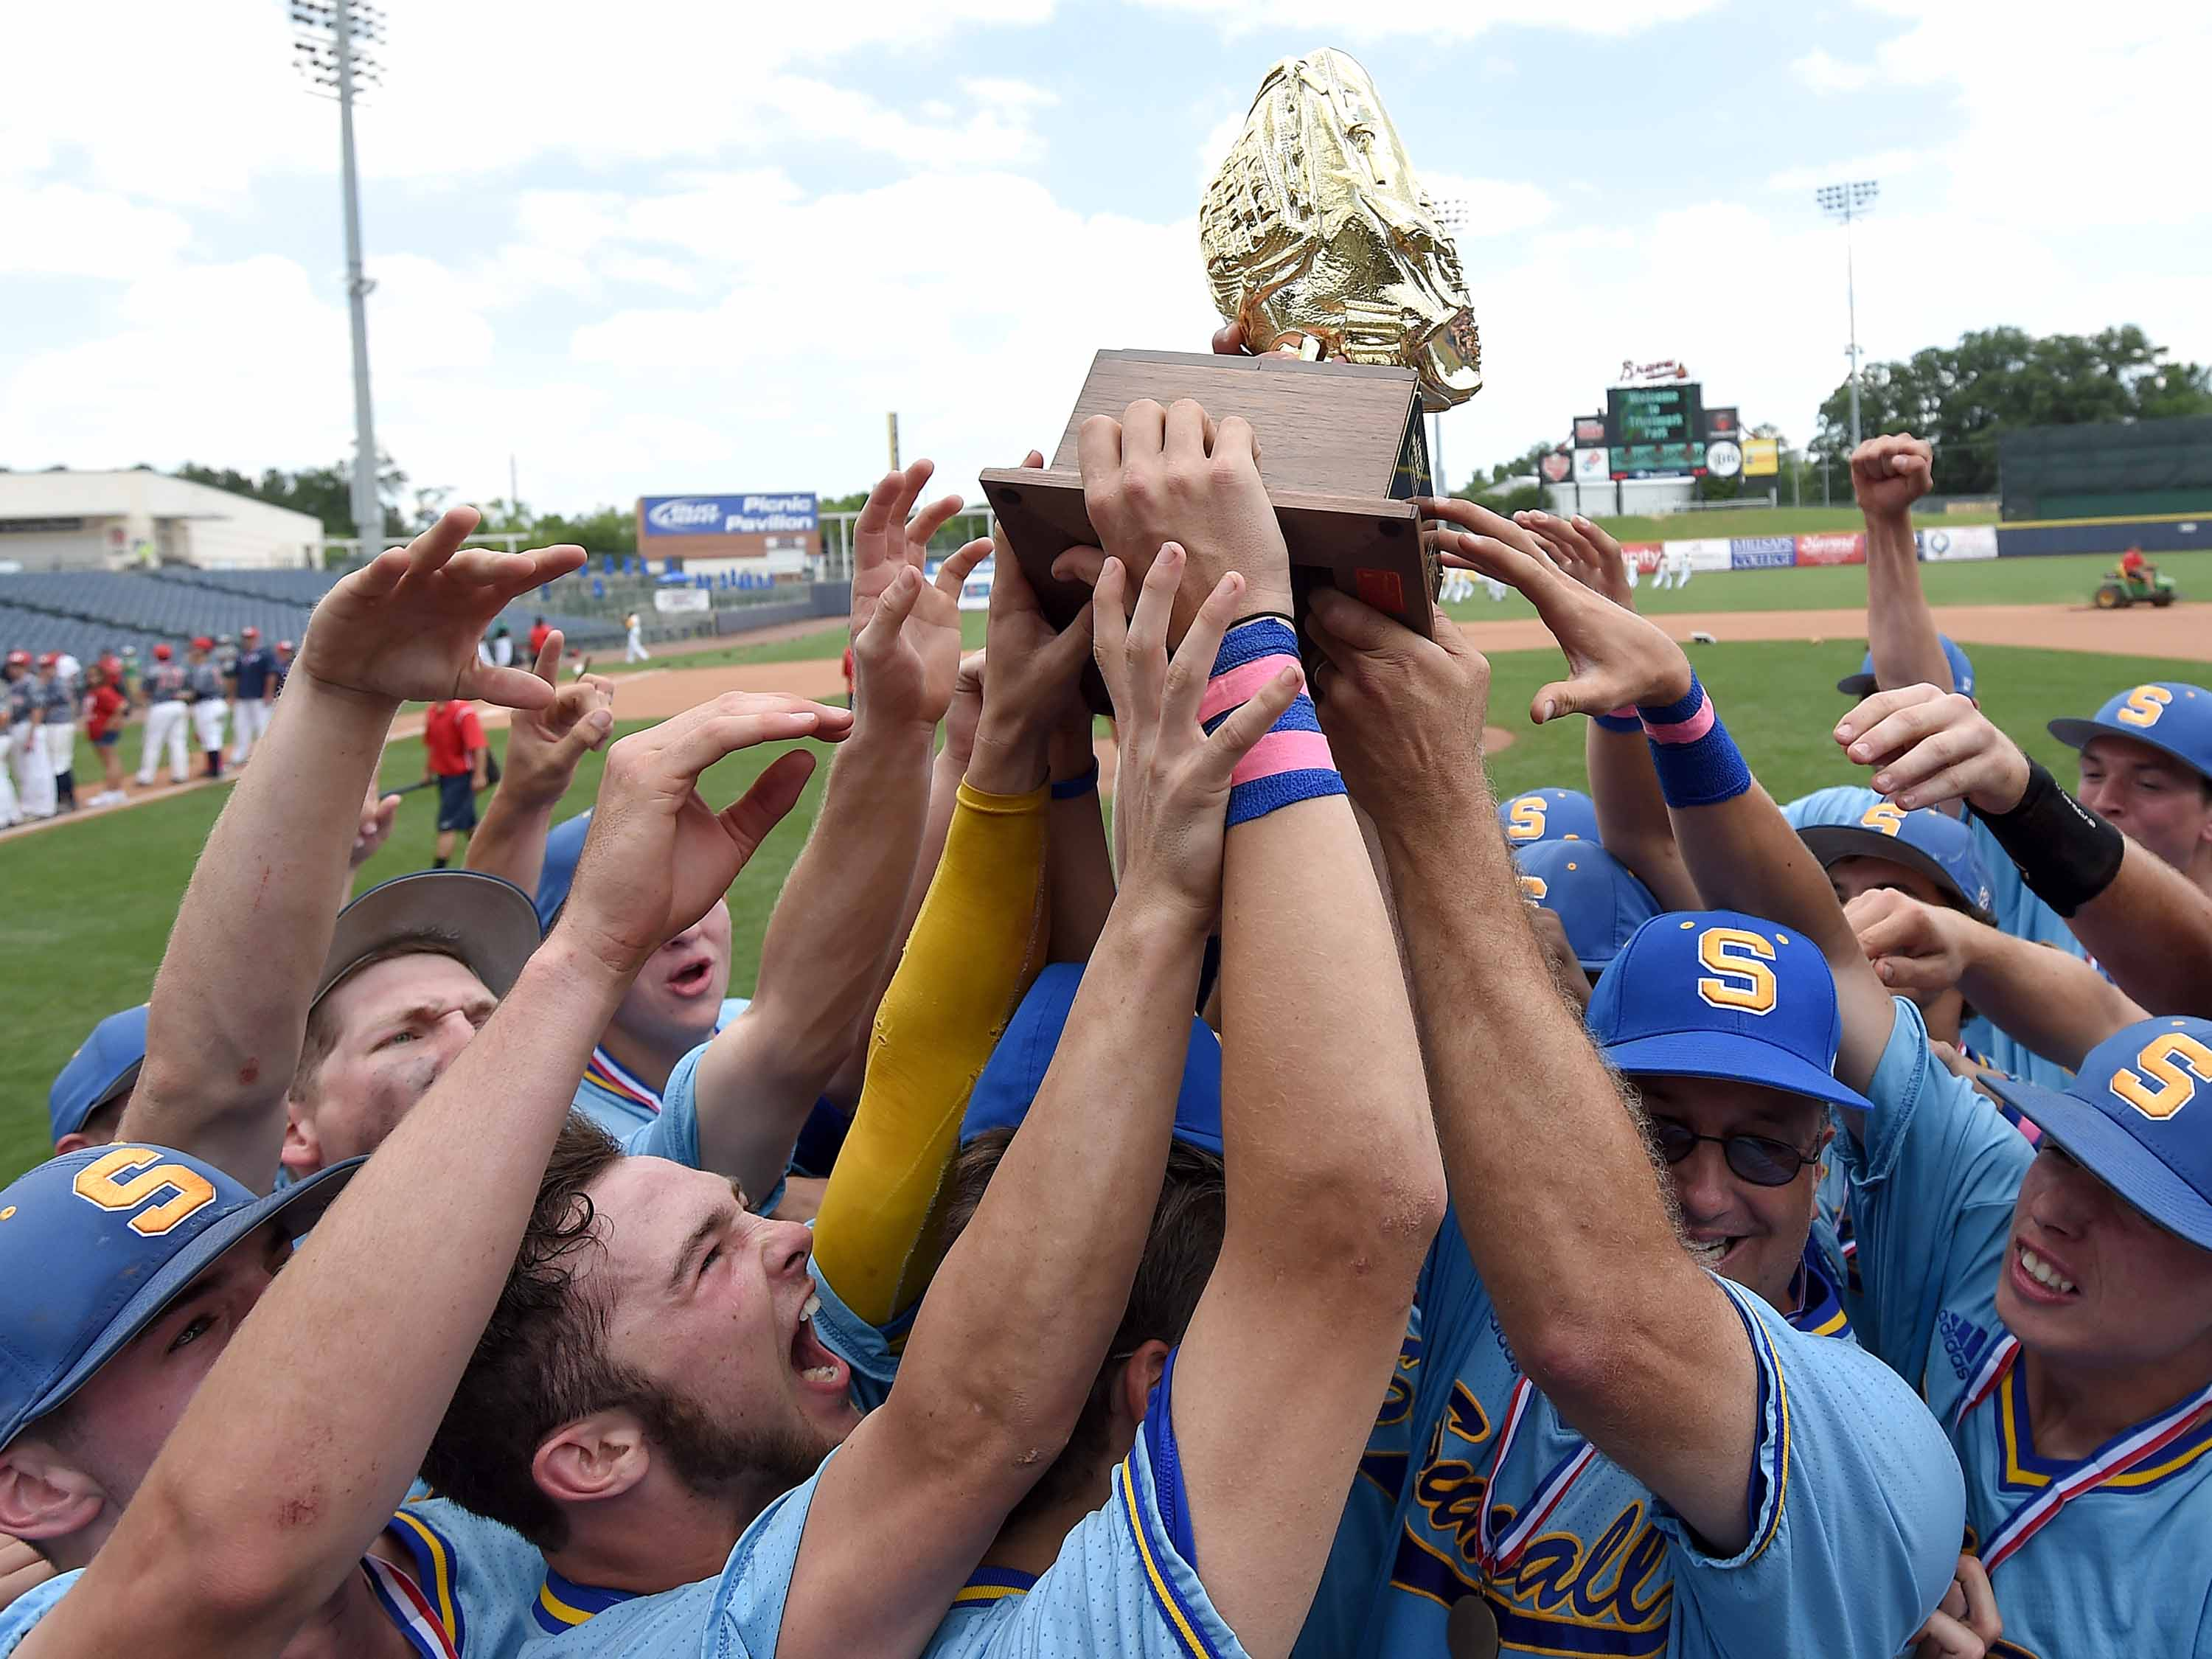 The Sumrall Bobcats celebrate with the Class 3A state championship trophy after beating Belmont 7-2 in game 3 of the State Championshop series Saturday at Pearl.